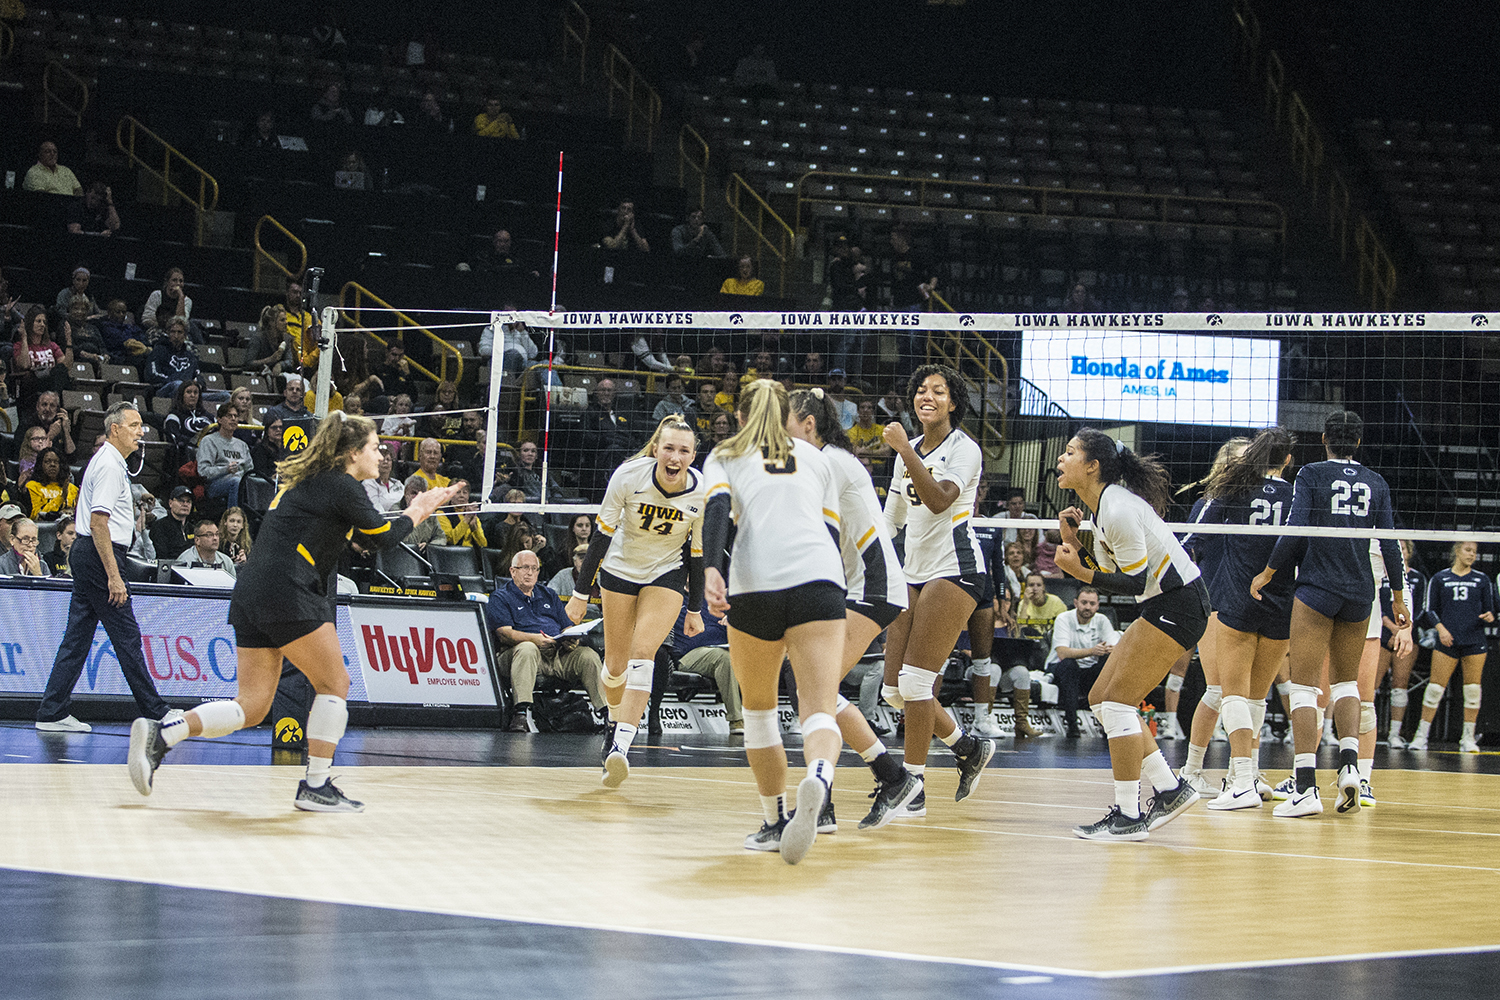 Iowa+players+celebrate+during+a+volleyball+match+between+Iowa+and+Penn+State+at+Carver-Hawkeye+Arena+on+Saturday%2C+Nov.+3%2C+2018.+The+Hawkeyes+were+shut+out+by+the+Nittany+Lions%2C+3-0.